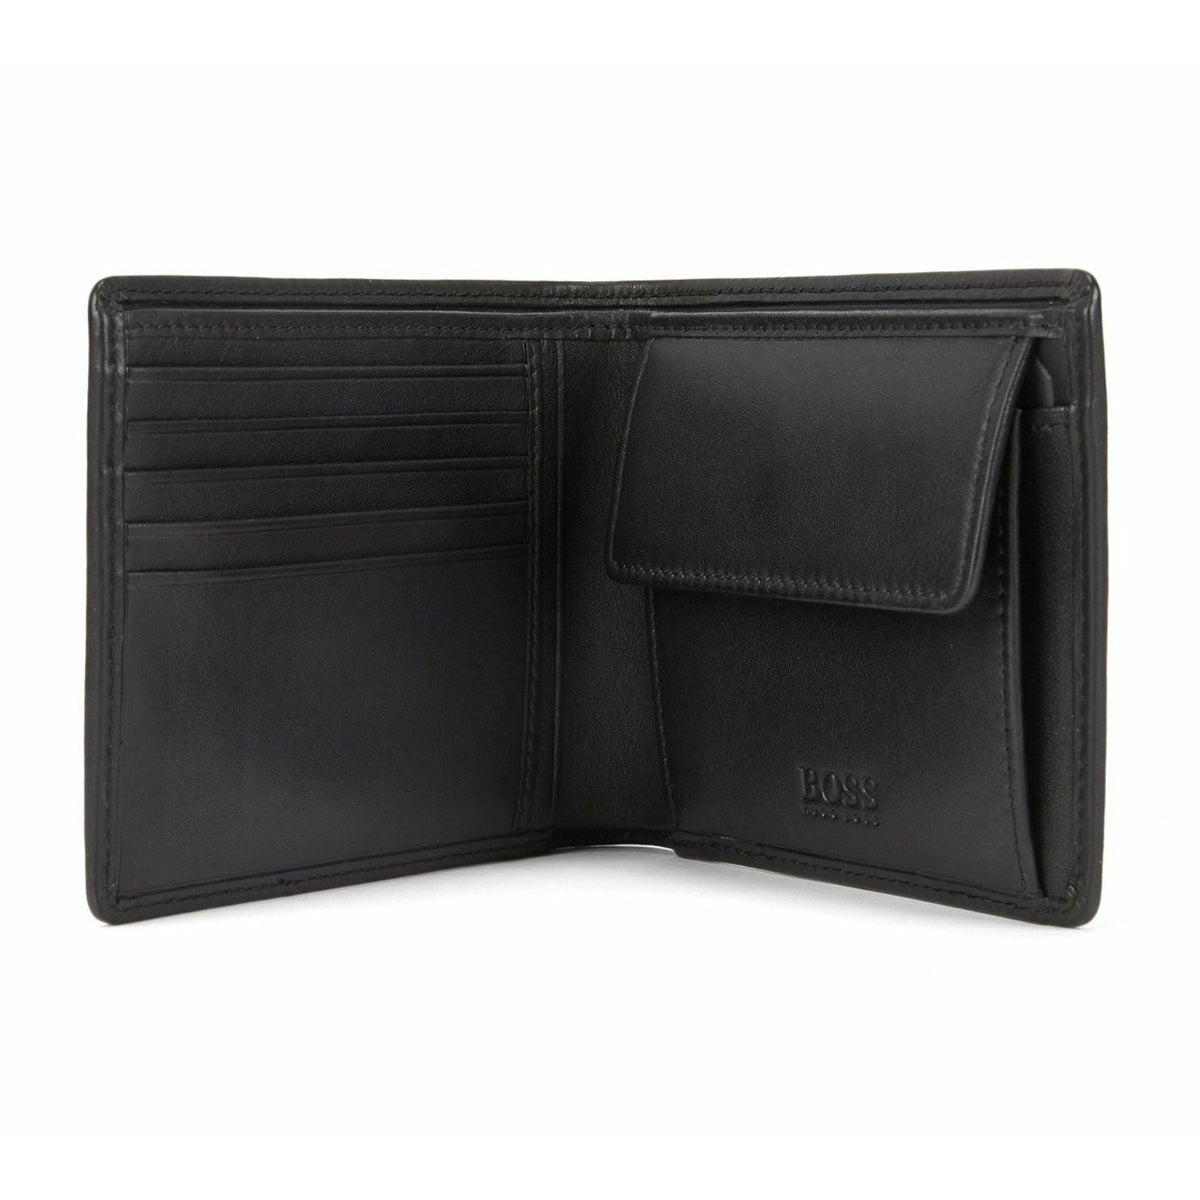 Hugo Boss Billfold Smooth Leather Wallet With Coin Pocket